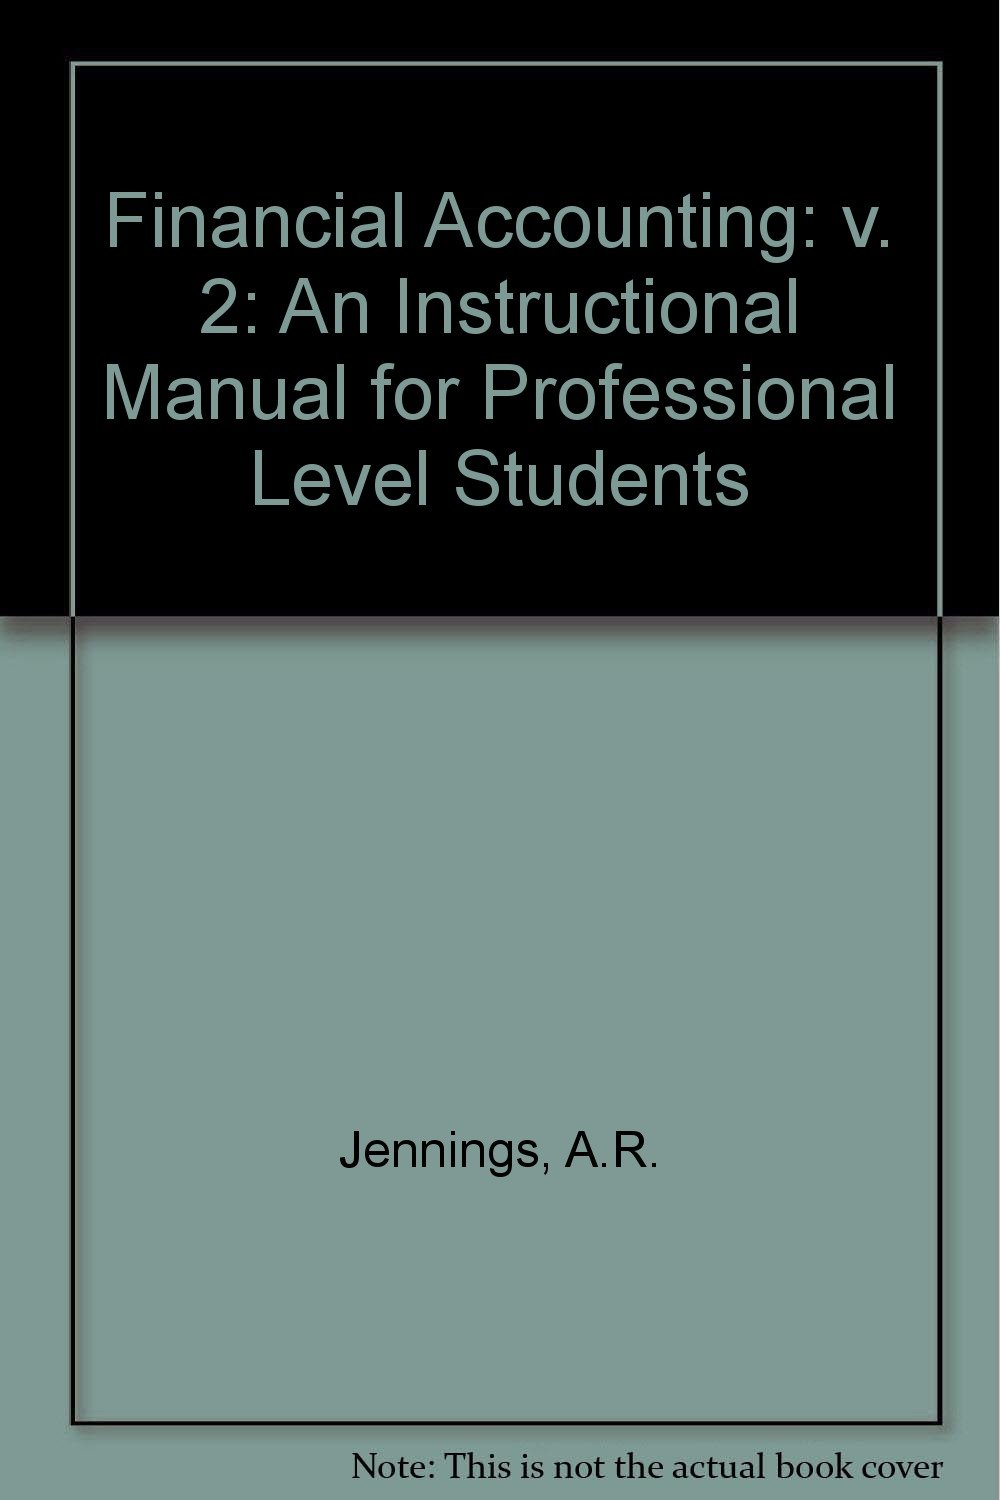 Financial Accounting: An Instructional Manual for Professional Level  Students: v. 2: A.R. Jennings: 9780905435695: Amazon.com: Books